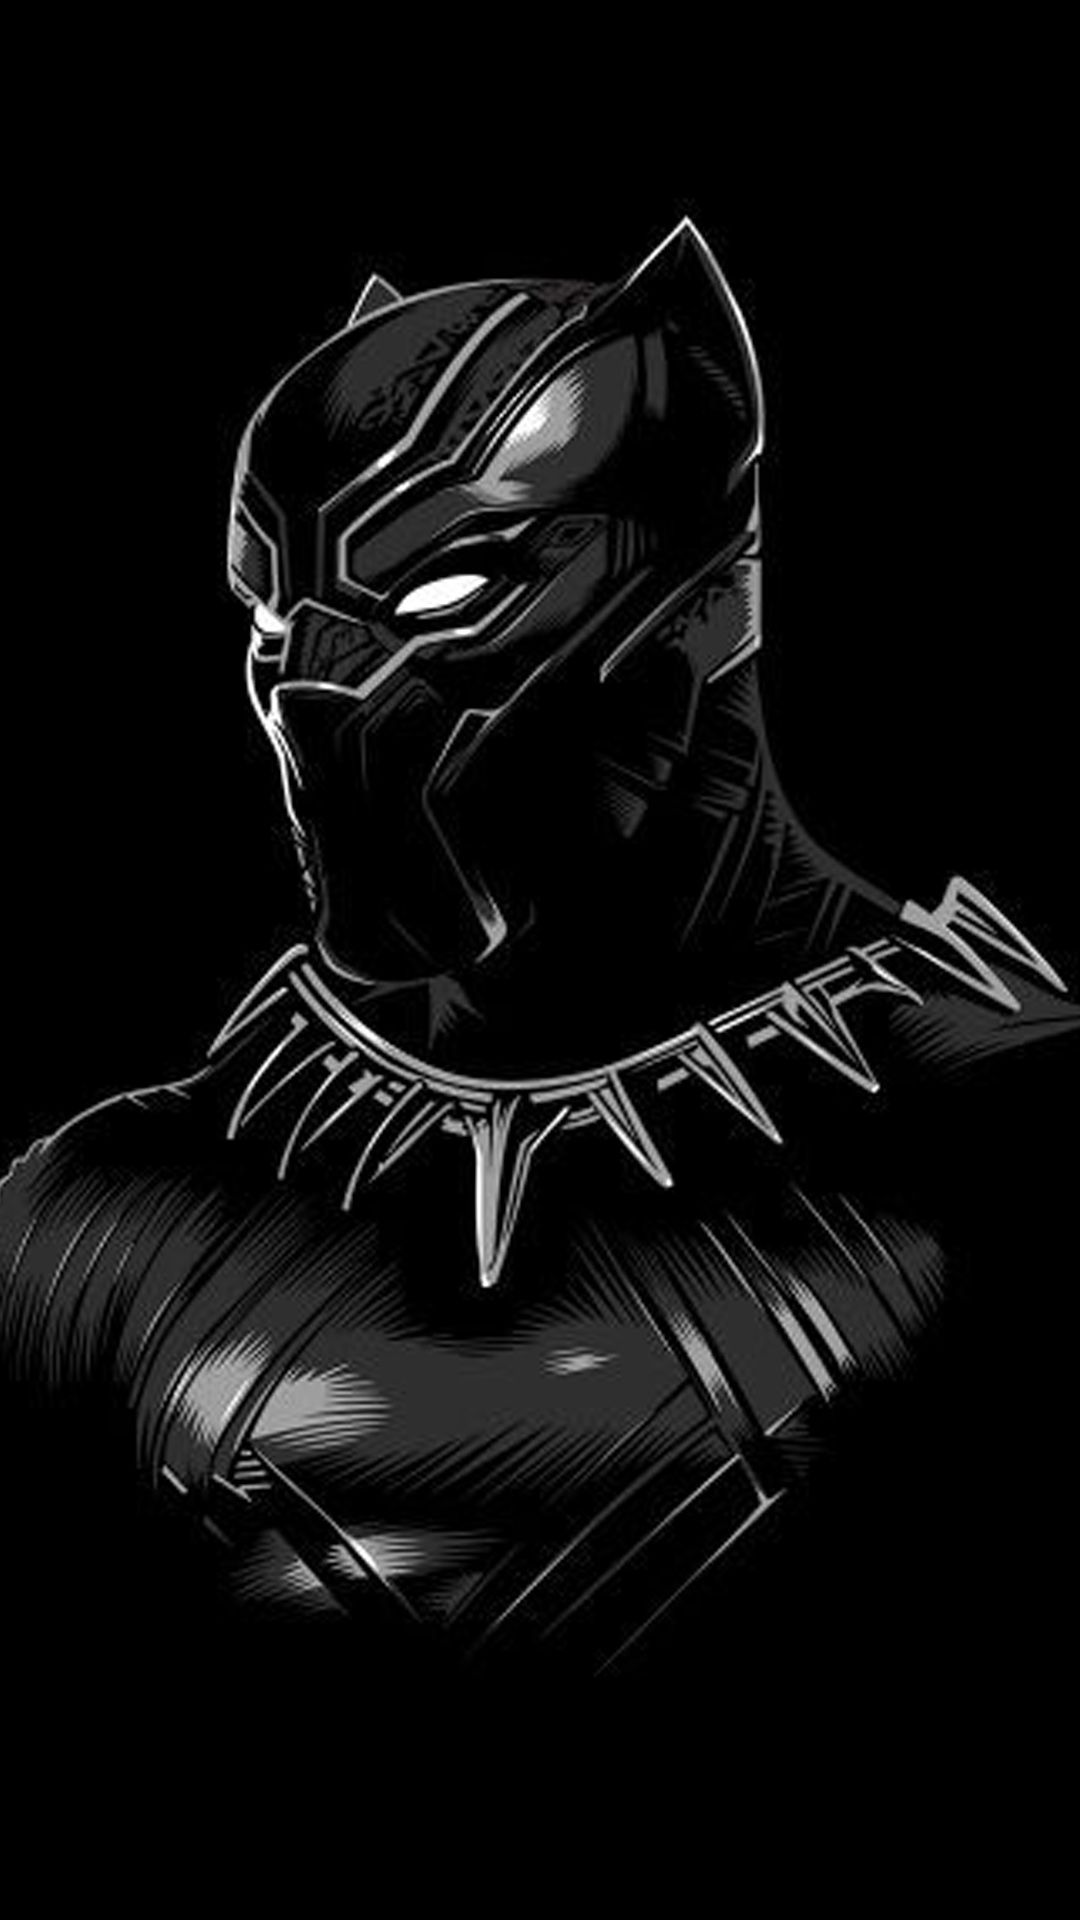 24 Black Panther Marvel Mobile Wallpapers On Wallpapersafari